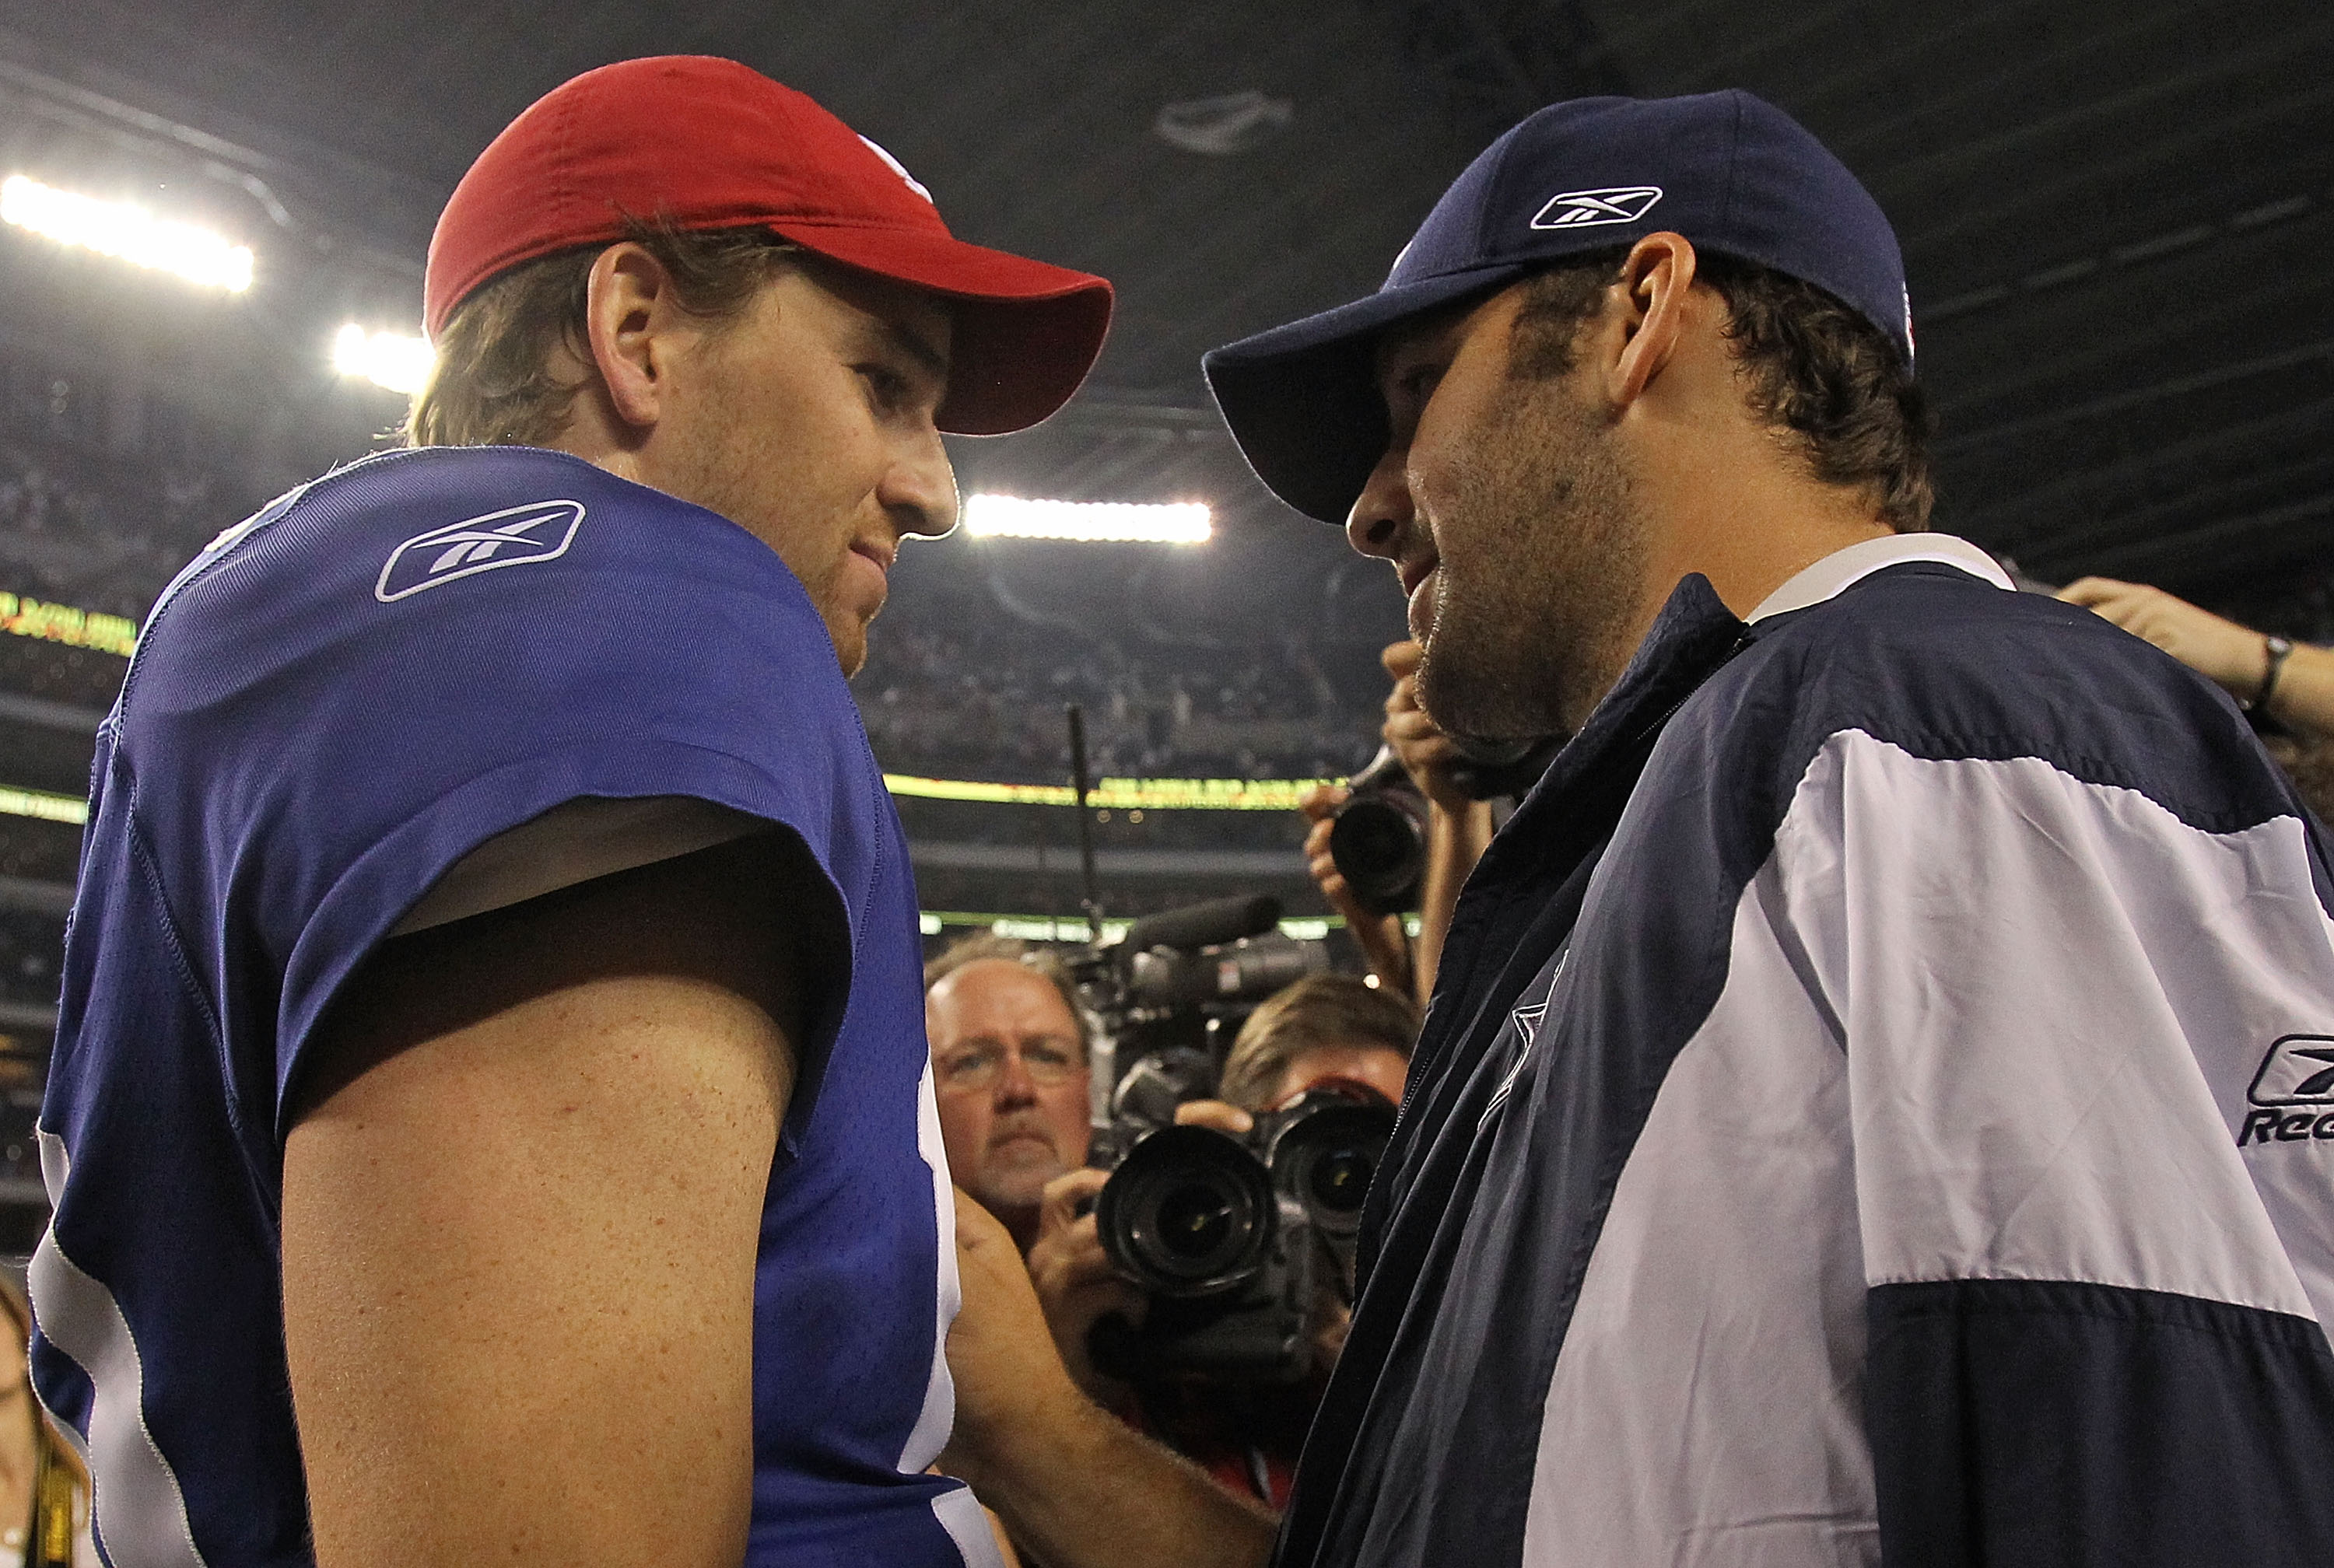 ARLINGTON, TX - OCTOBER 25:  Quarterback Tony Romo #9 of the Dallas Cowboys talks with Eli Manning #10 of the New York Giants after a game at Cowboys Stadium on October 25, 2010 in Arlington, Texas.  (Photo by Ronald Martinez/Getty Images)